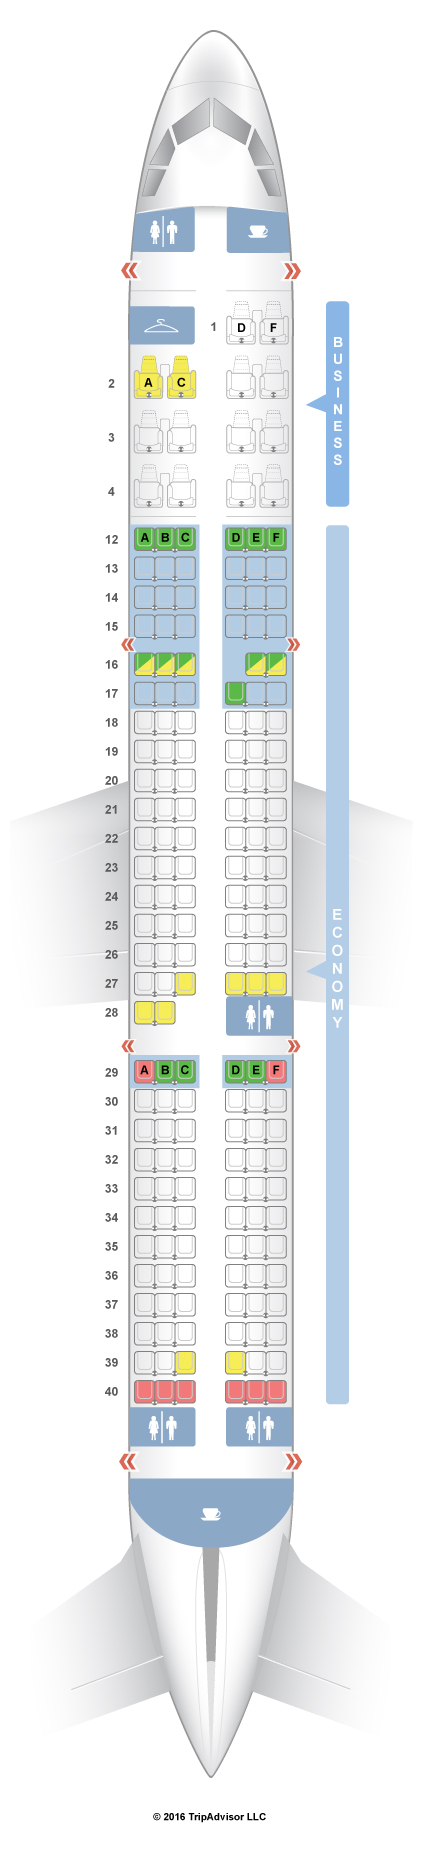 Air Canada Seating Chart Airbus A320 Seatguru Seat Map